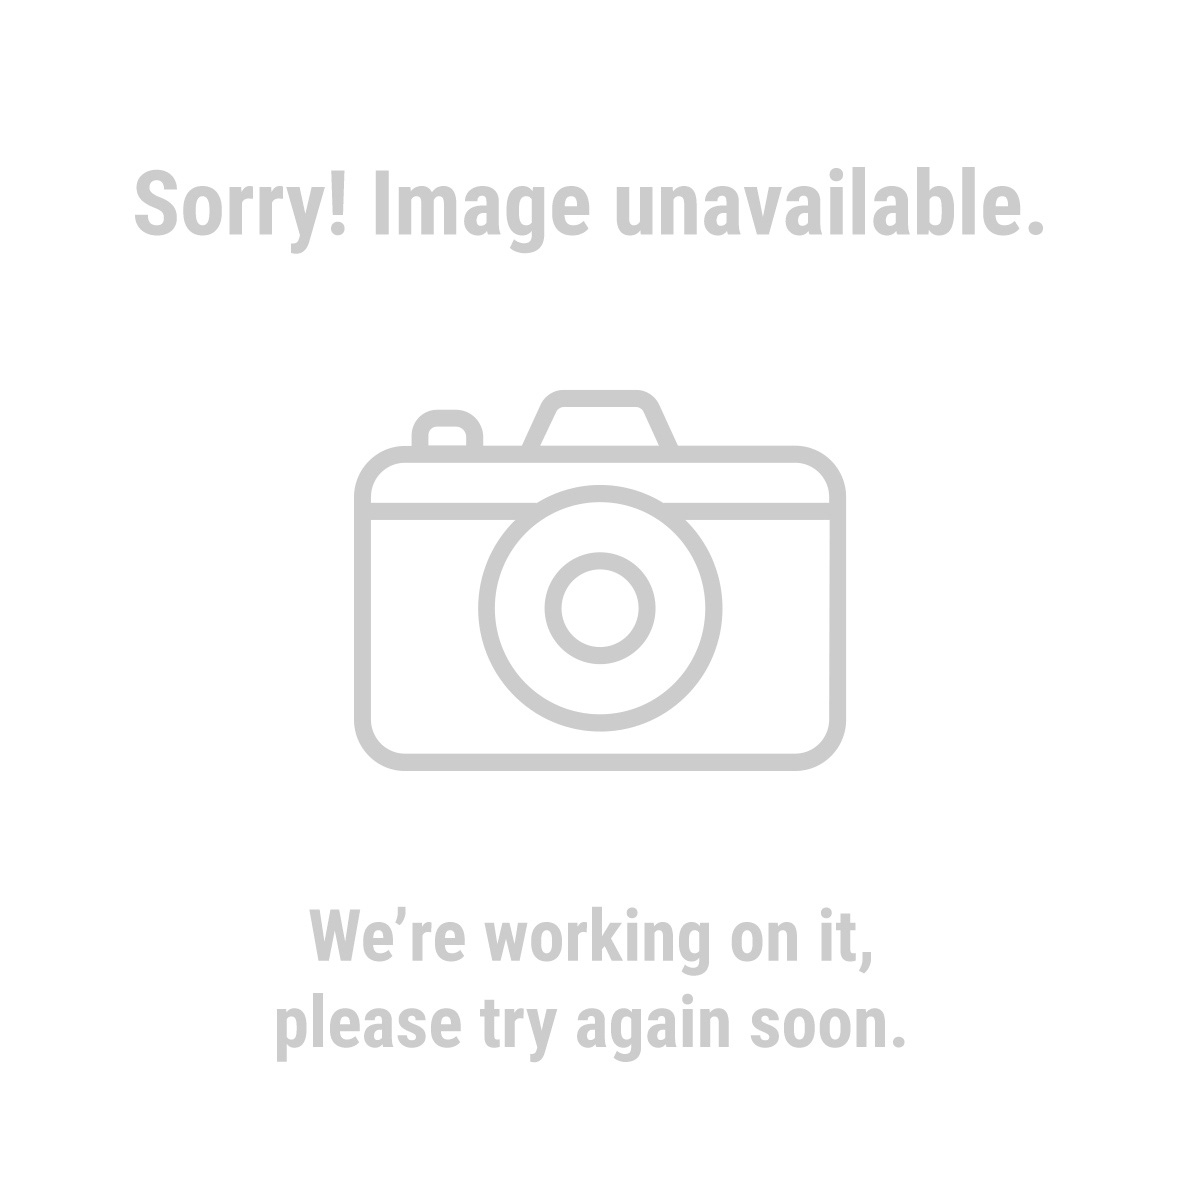 12 ton h frame industrial heavy duty floor shop press